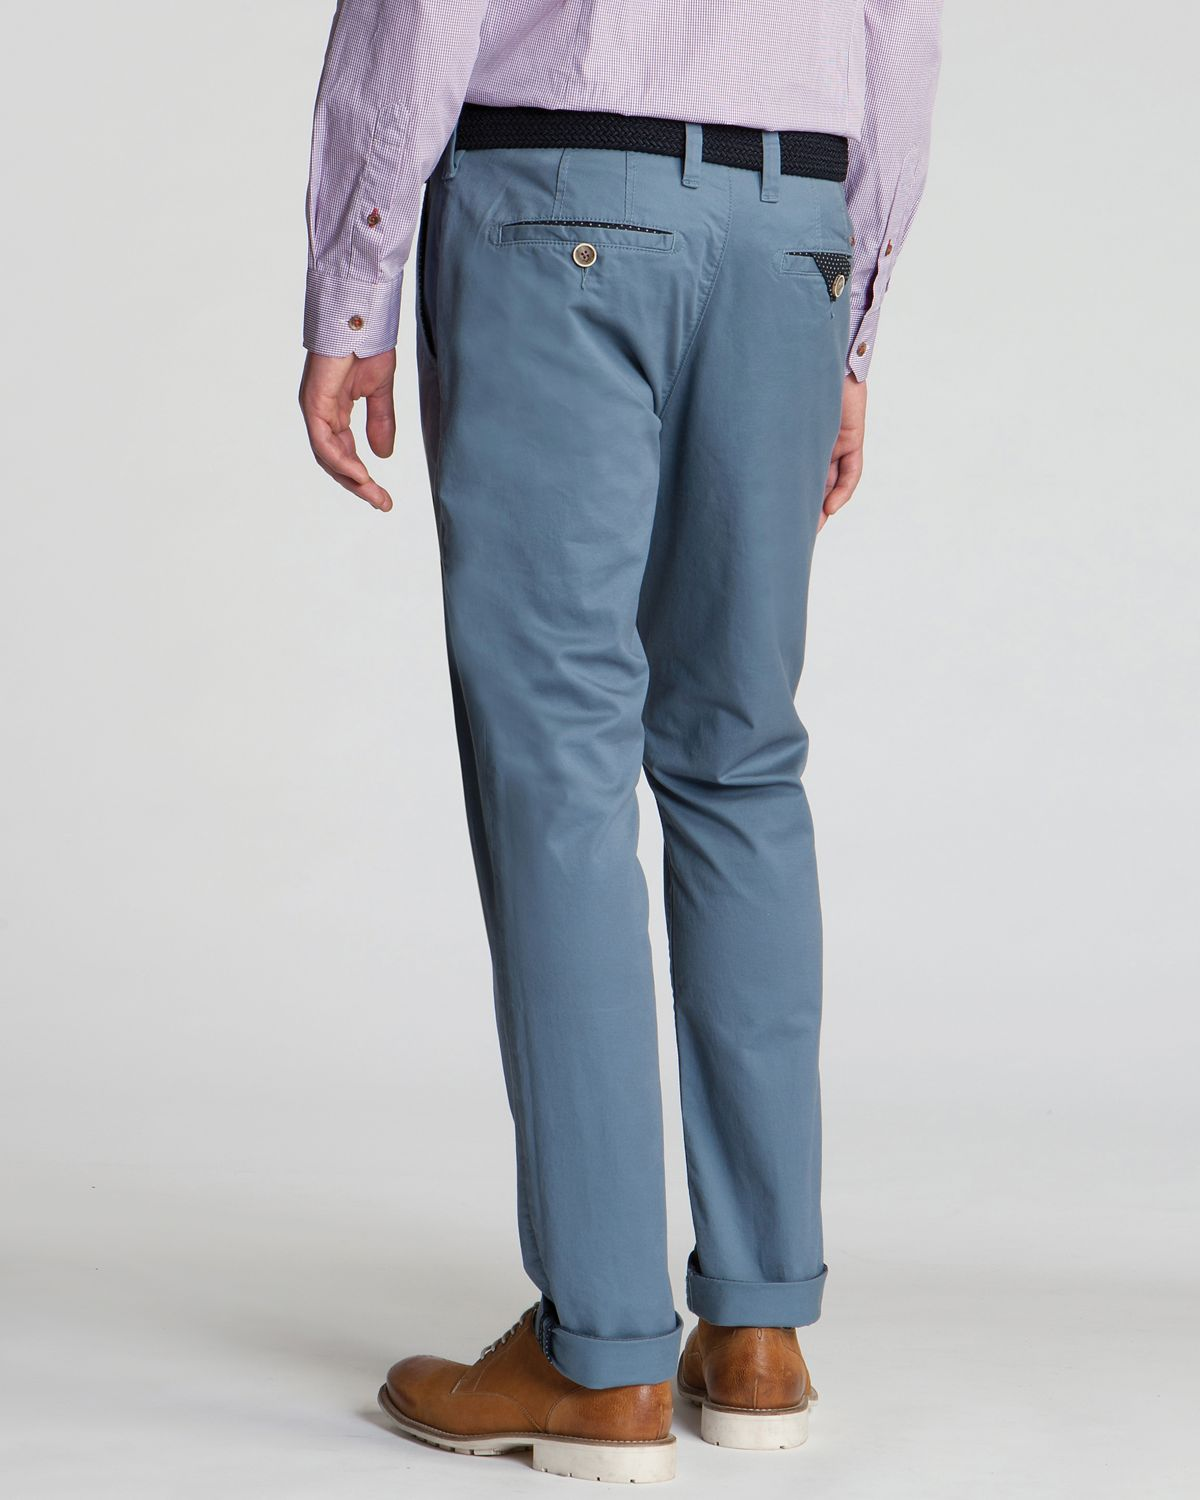 6f707d9c2 Lyst - Ted Baker Aragog Slim Fit Chino Pants in Blue for Men